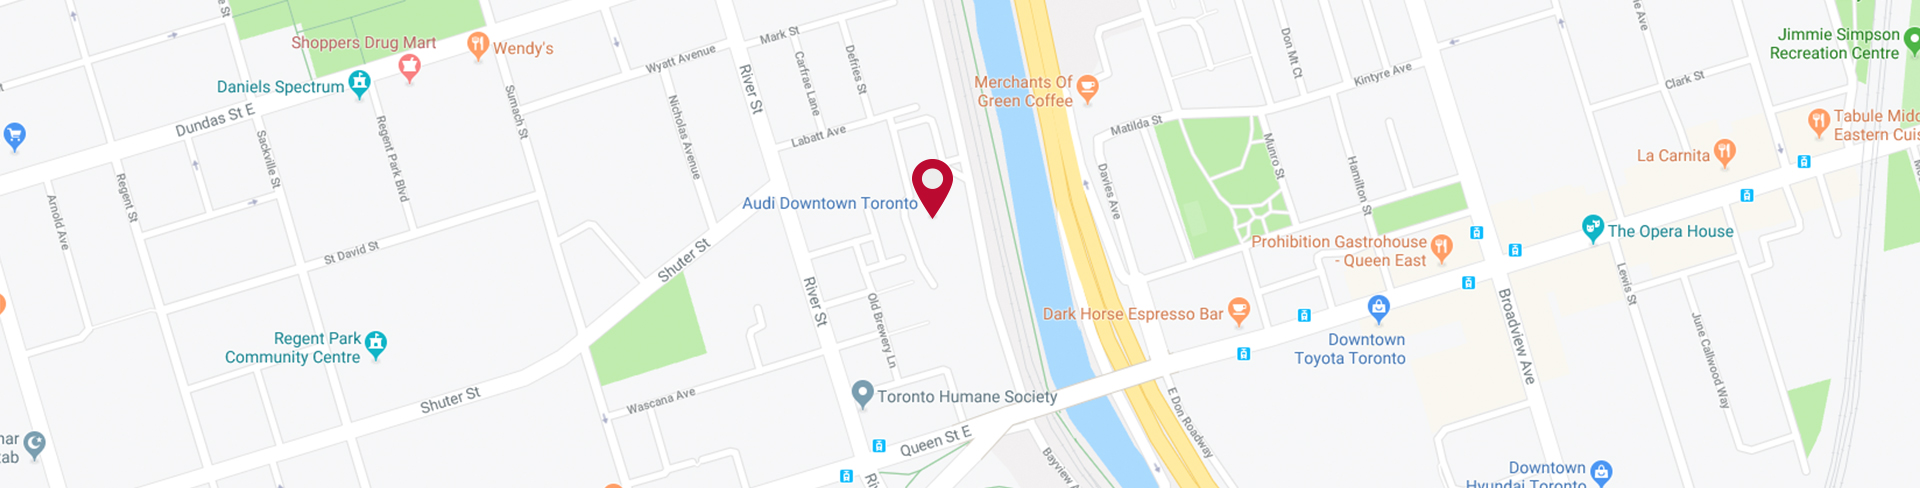 Audi Downtown Toronto map